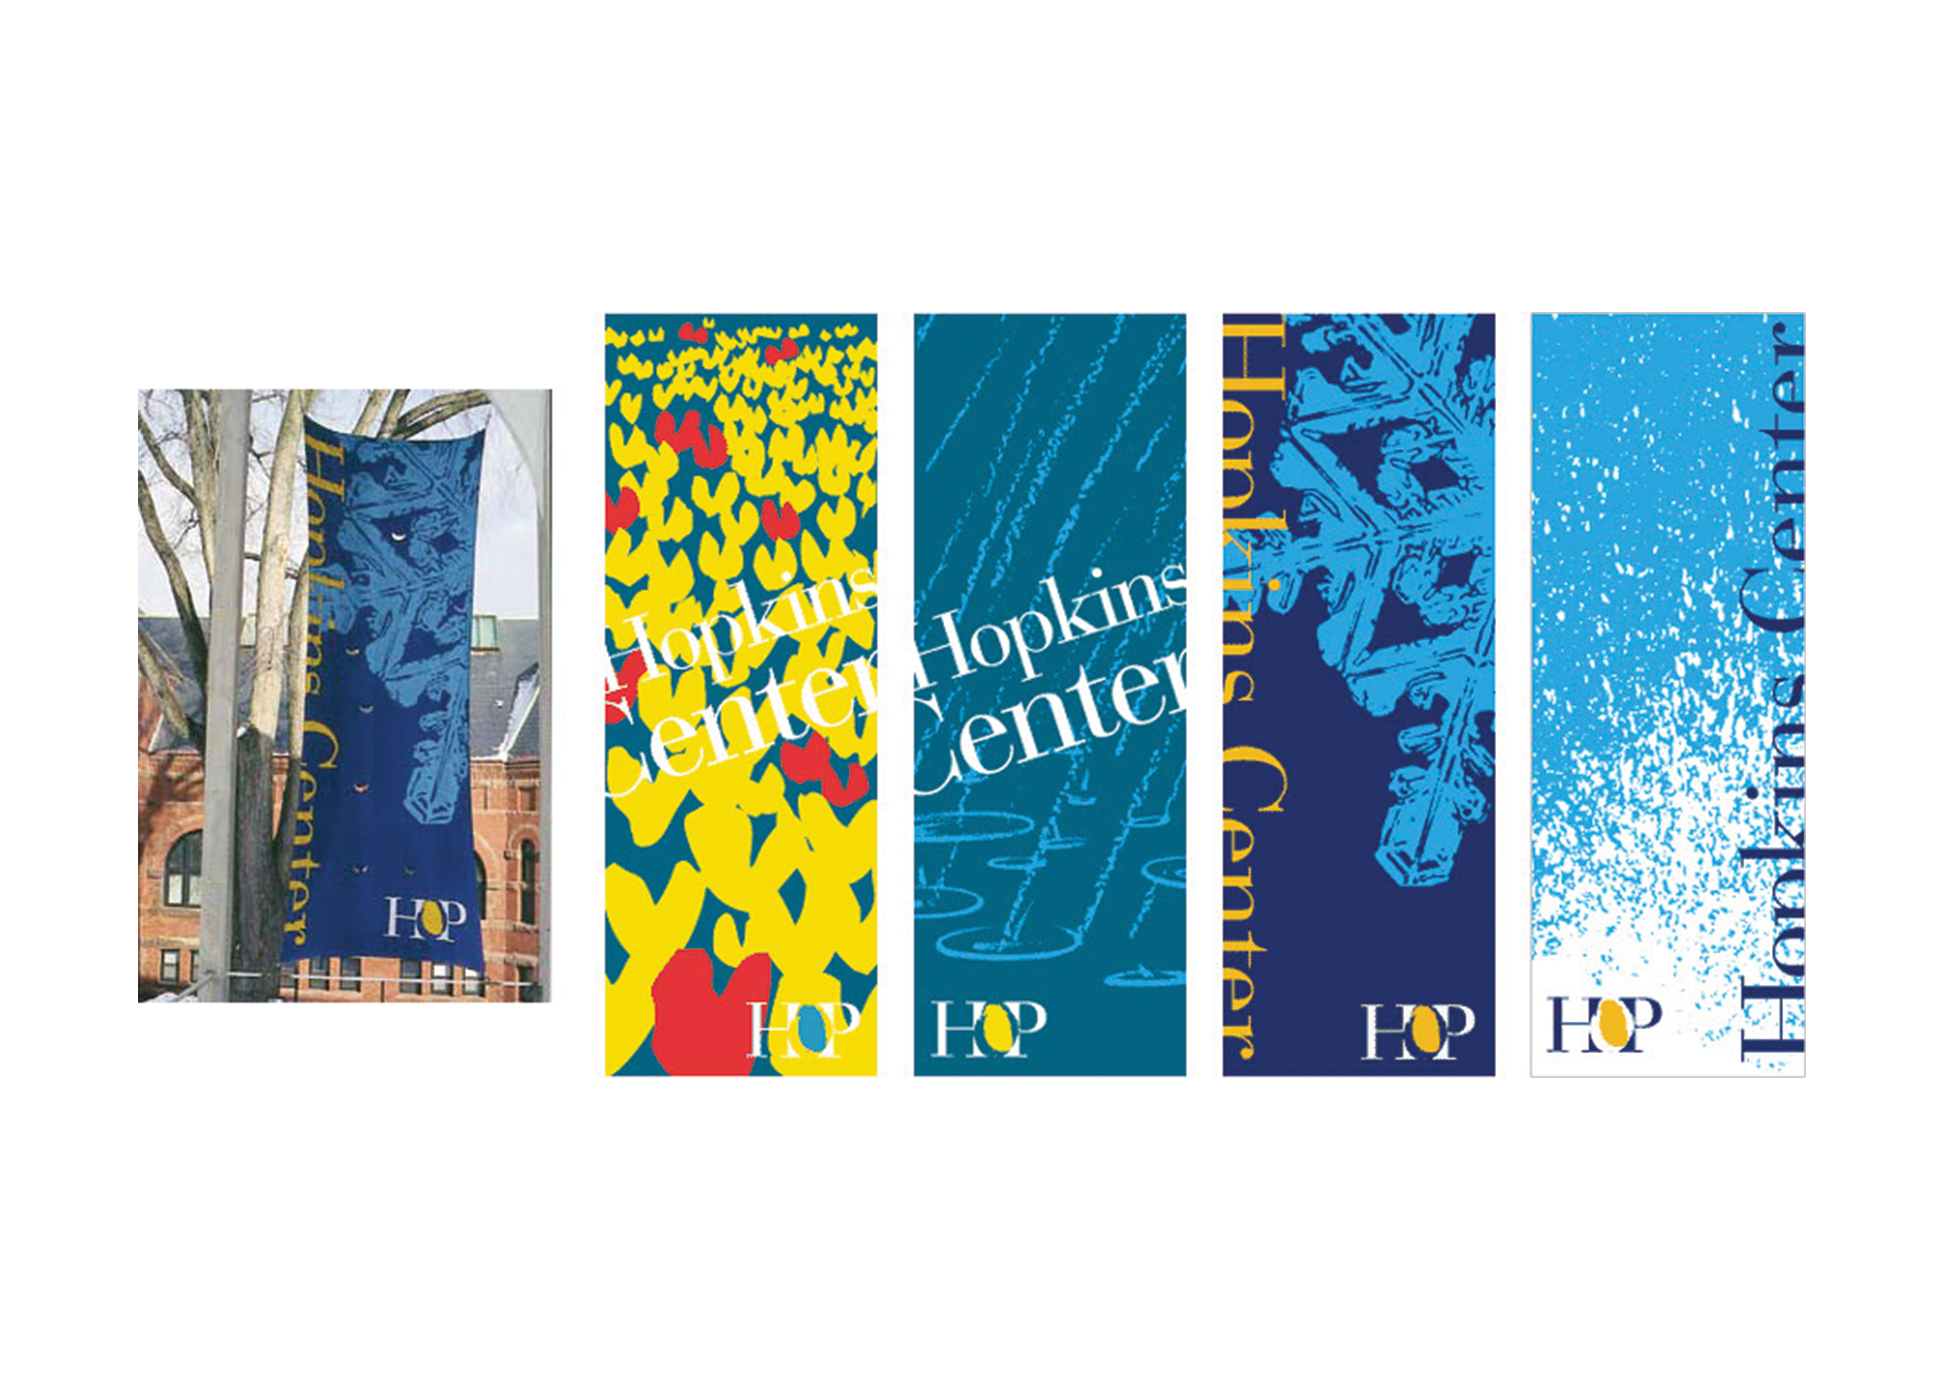 Seasonal banners for Hopkins Center for the Arts at Dartmouth College.